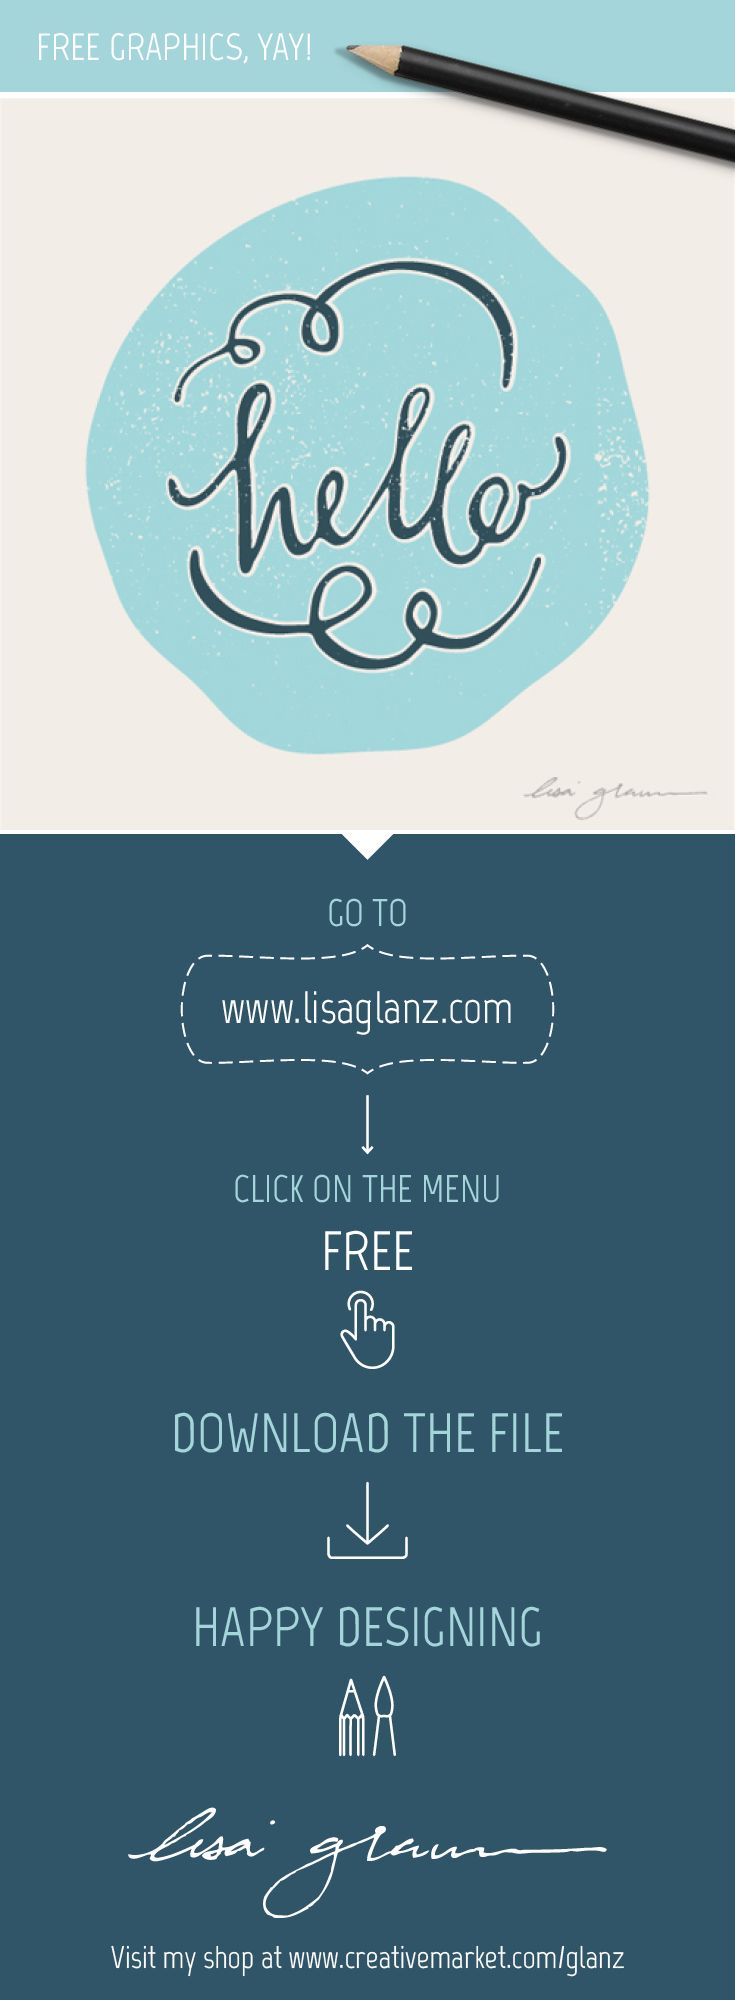 Visit http://www.lisaglanz.com to grab this hand lettered graphic free!  #free #graphics #illustration #vector #design